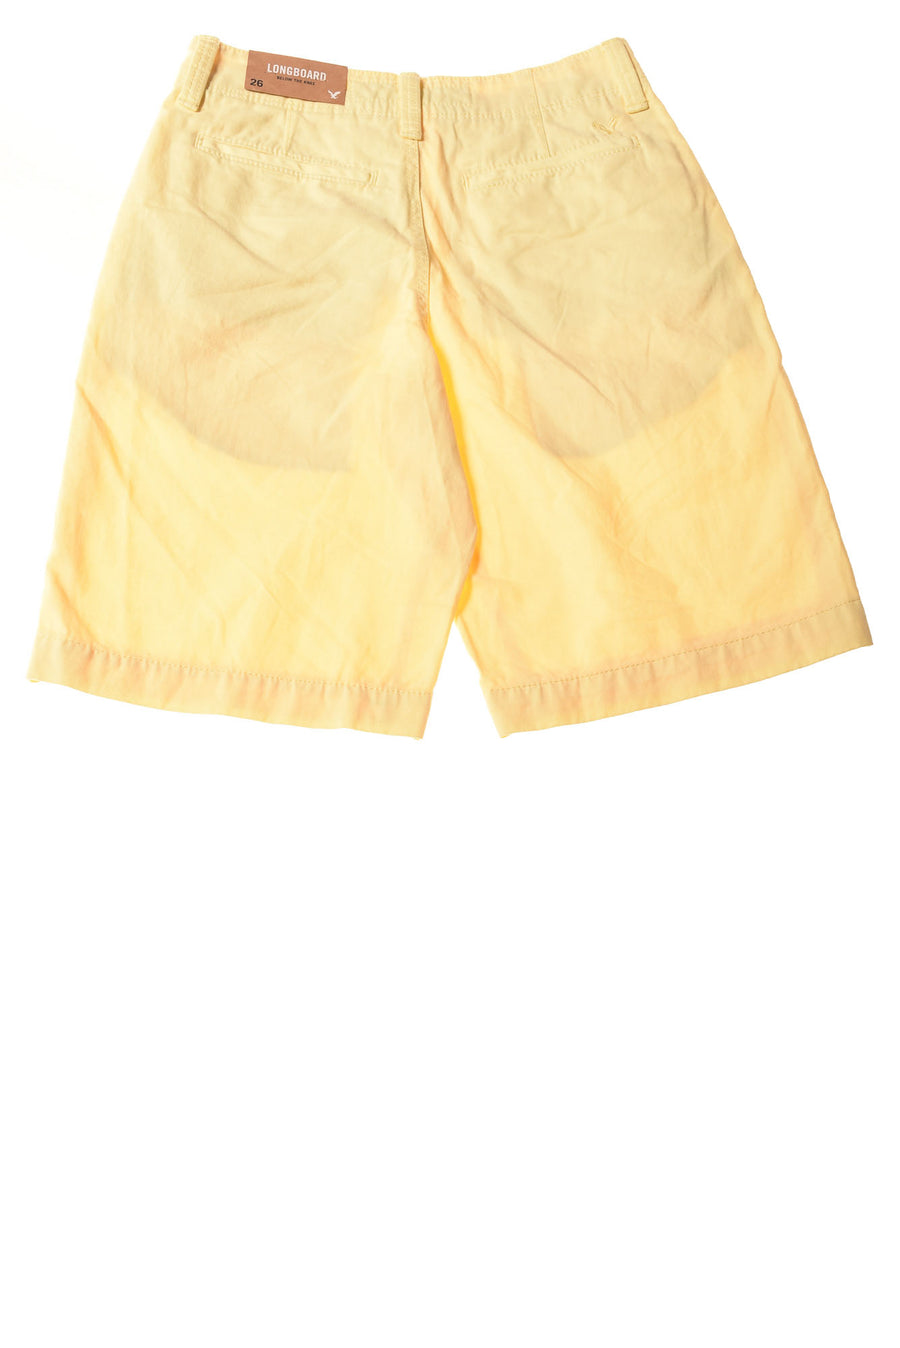 NEW American Eagle Men's Shorts 26 Yellow